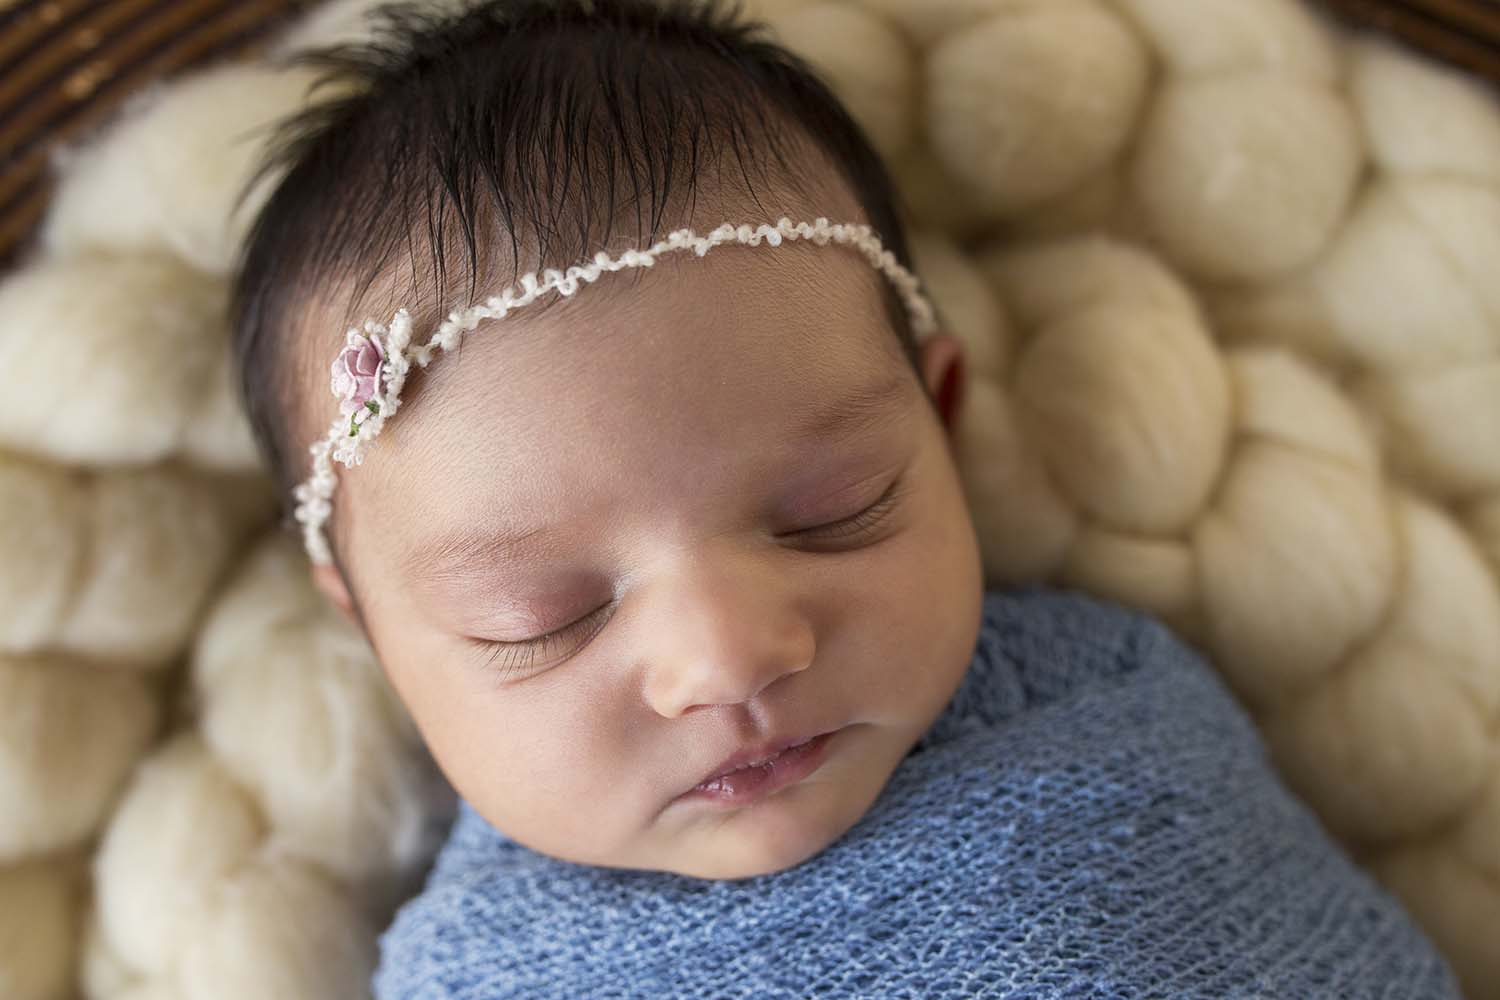 Newborn-baby-photography-toronto-copperred-photographer.jpg